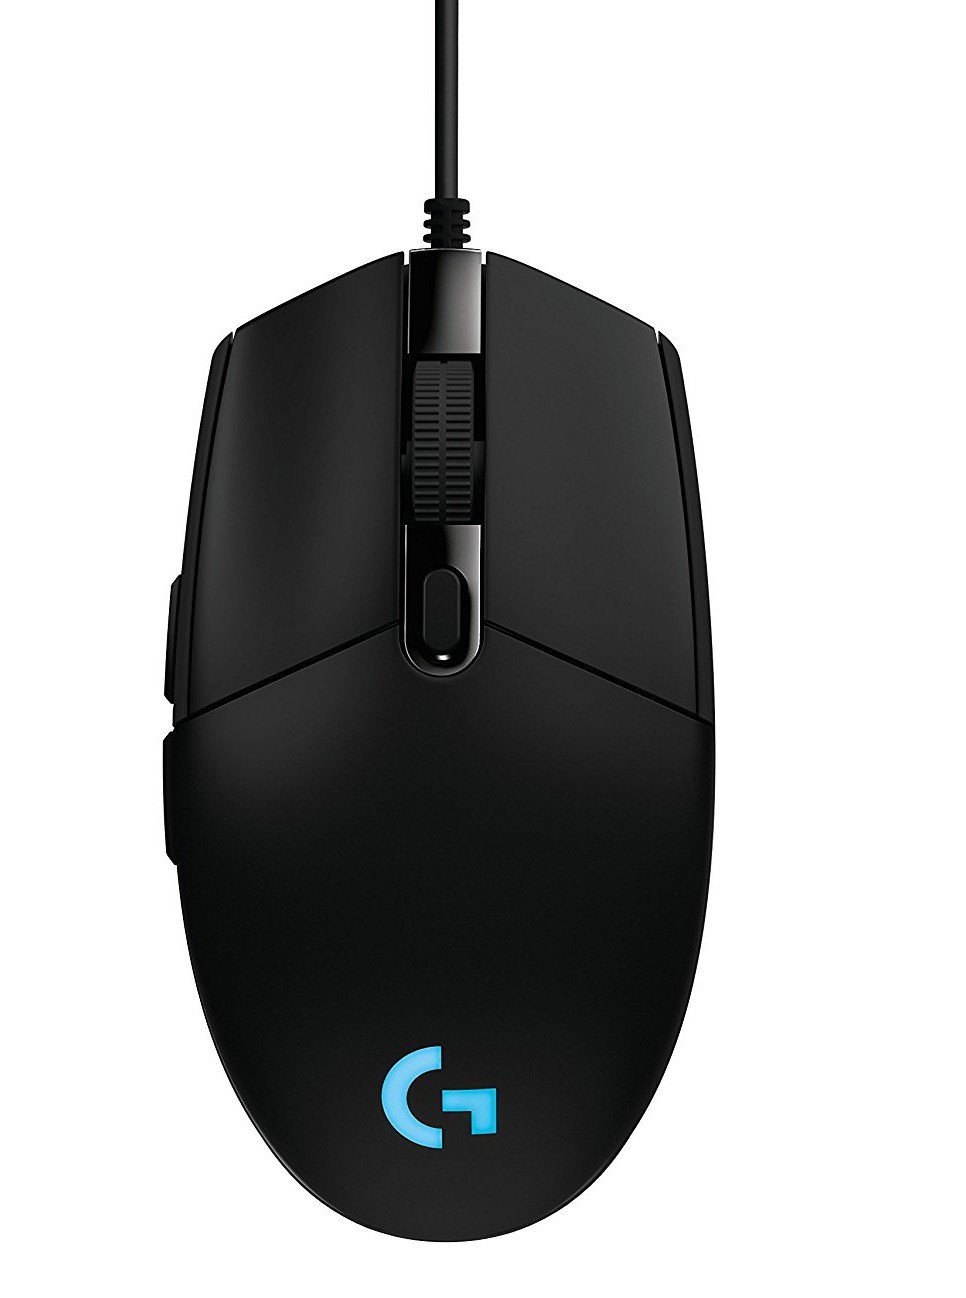 Logitech - G203 Prodigy Gaming Mouse - Black